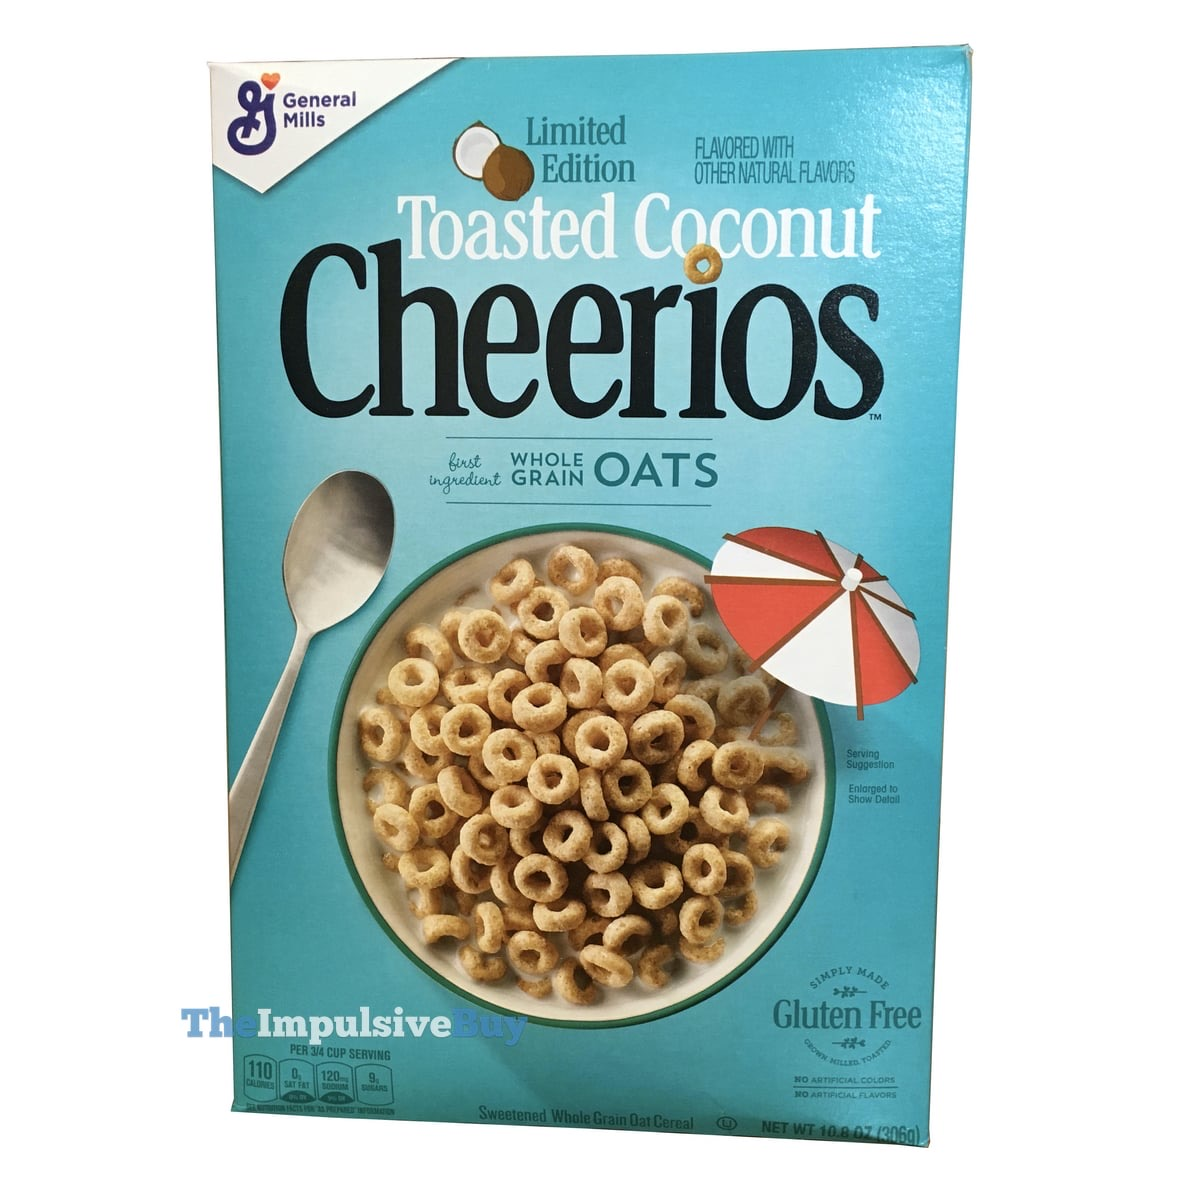 Toasted Coconut Cheerios Cereal